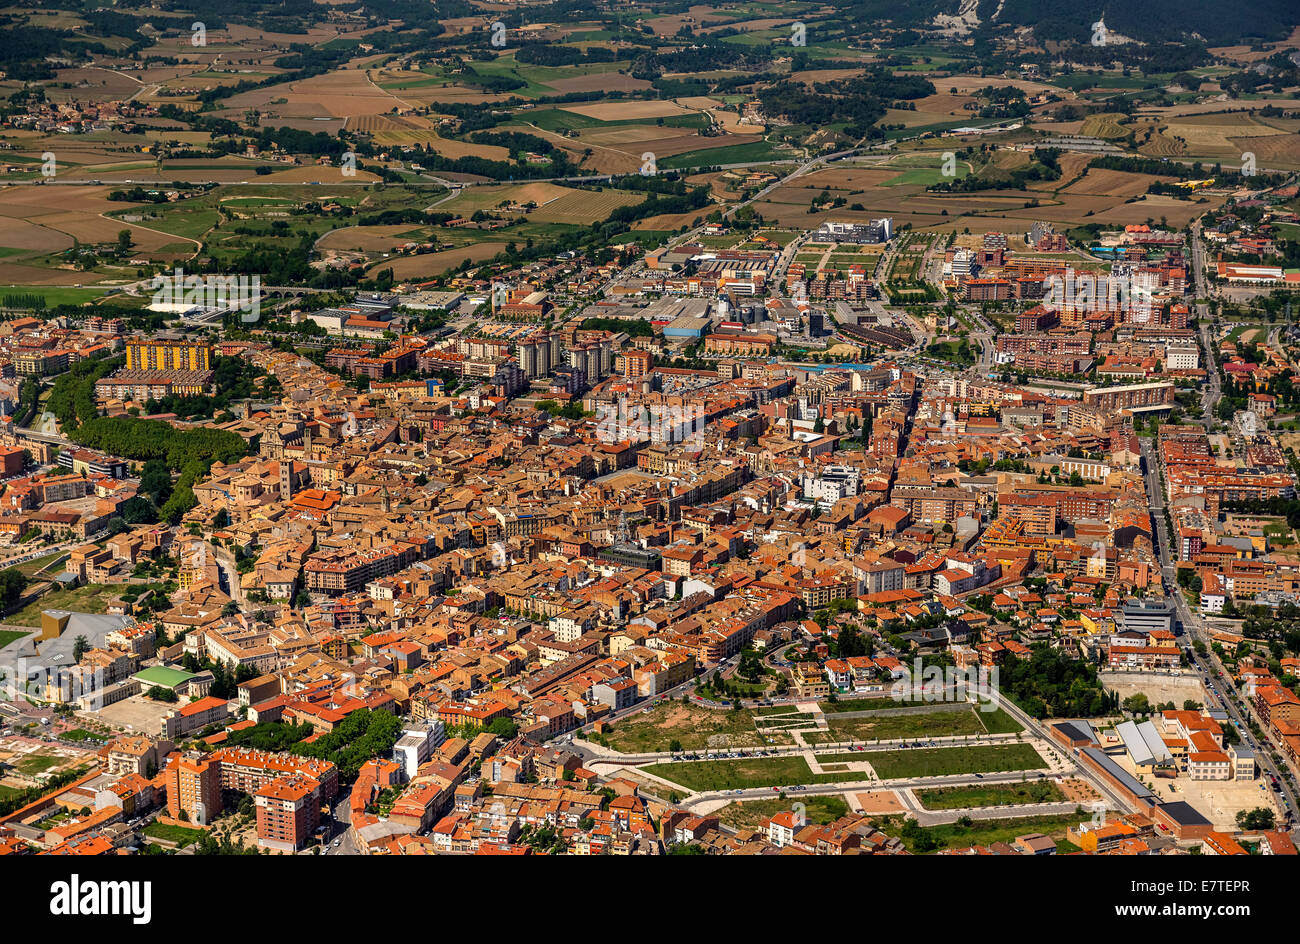 Aerial view, view of the town of Vic, Catalonia, Spain - Stock Image